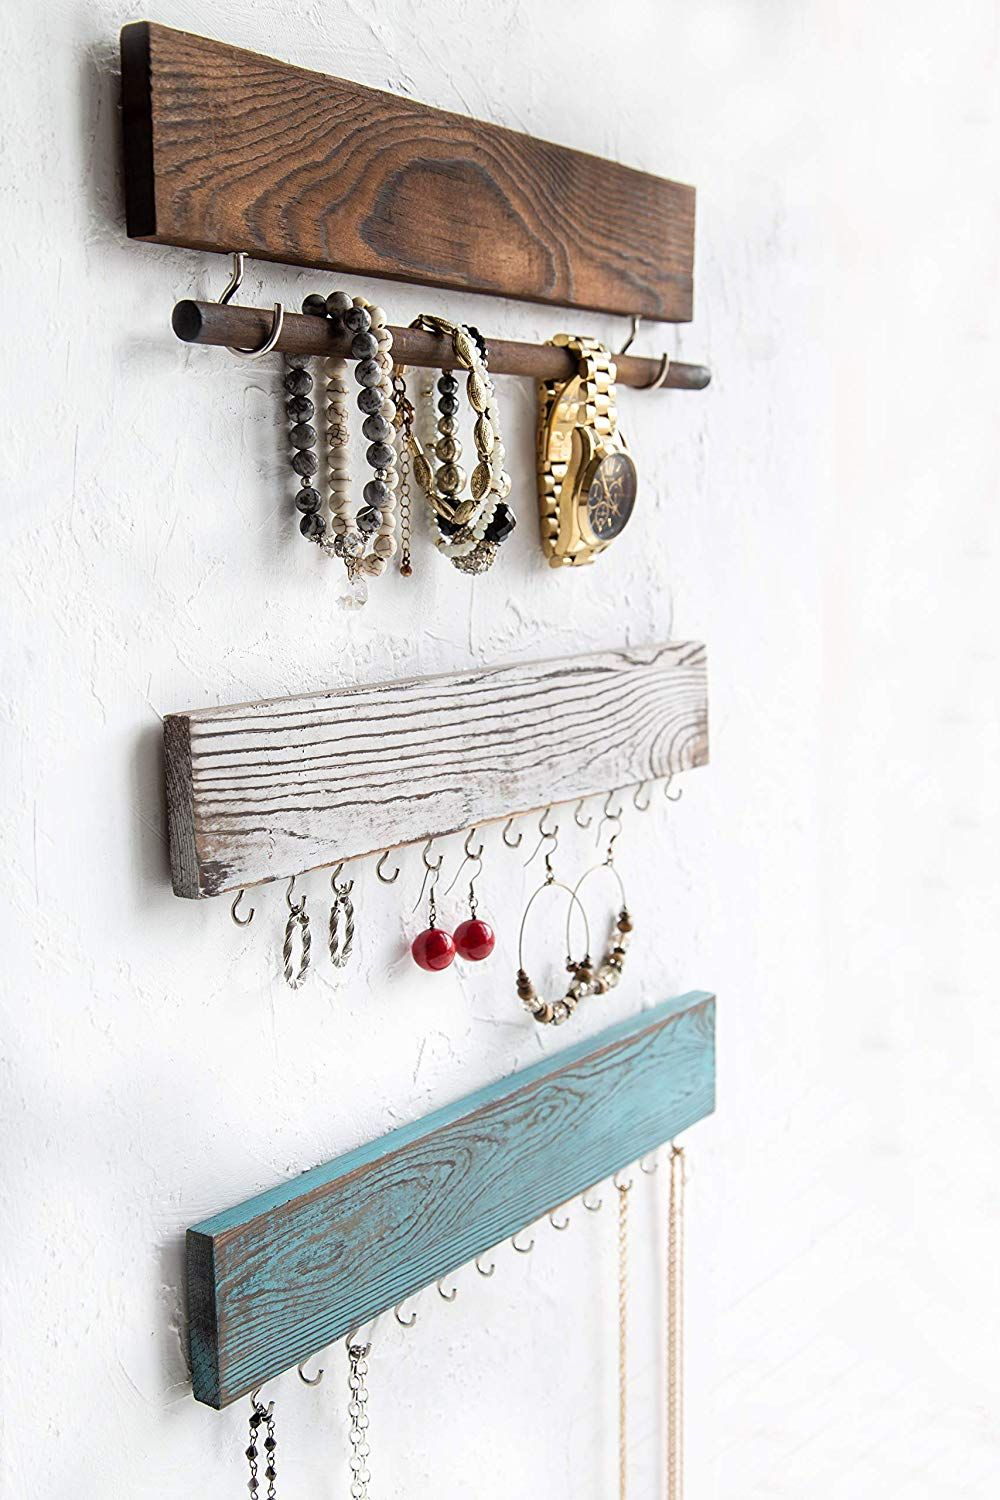 Rustic Home Decor Accents This High Quality Jewelry Holder Is